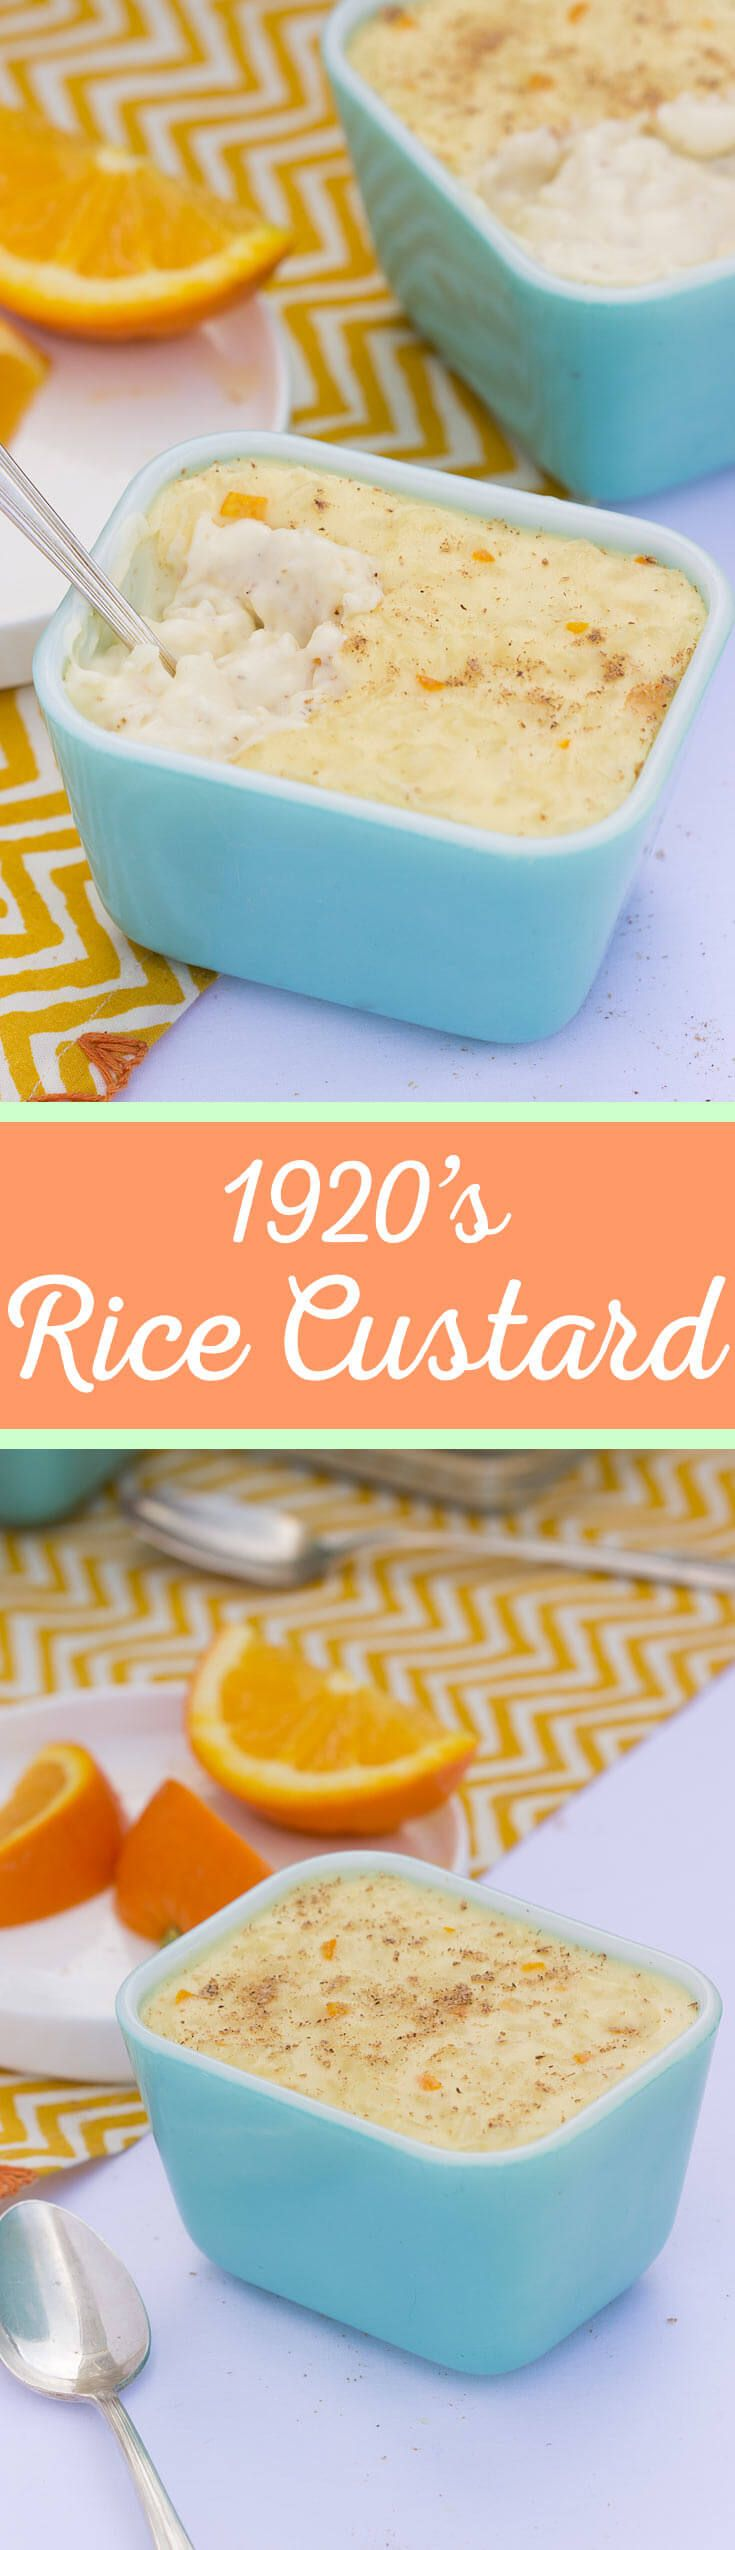 Sweet, creamy, and thick, this 1920's inspired Stovetop Rice Custard is a vintage recipe keeper! A great dessert that you'll want to make again and again.